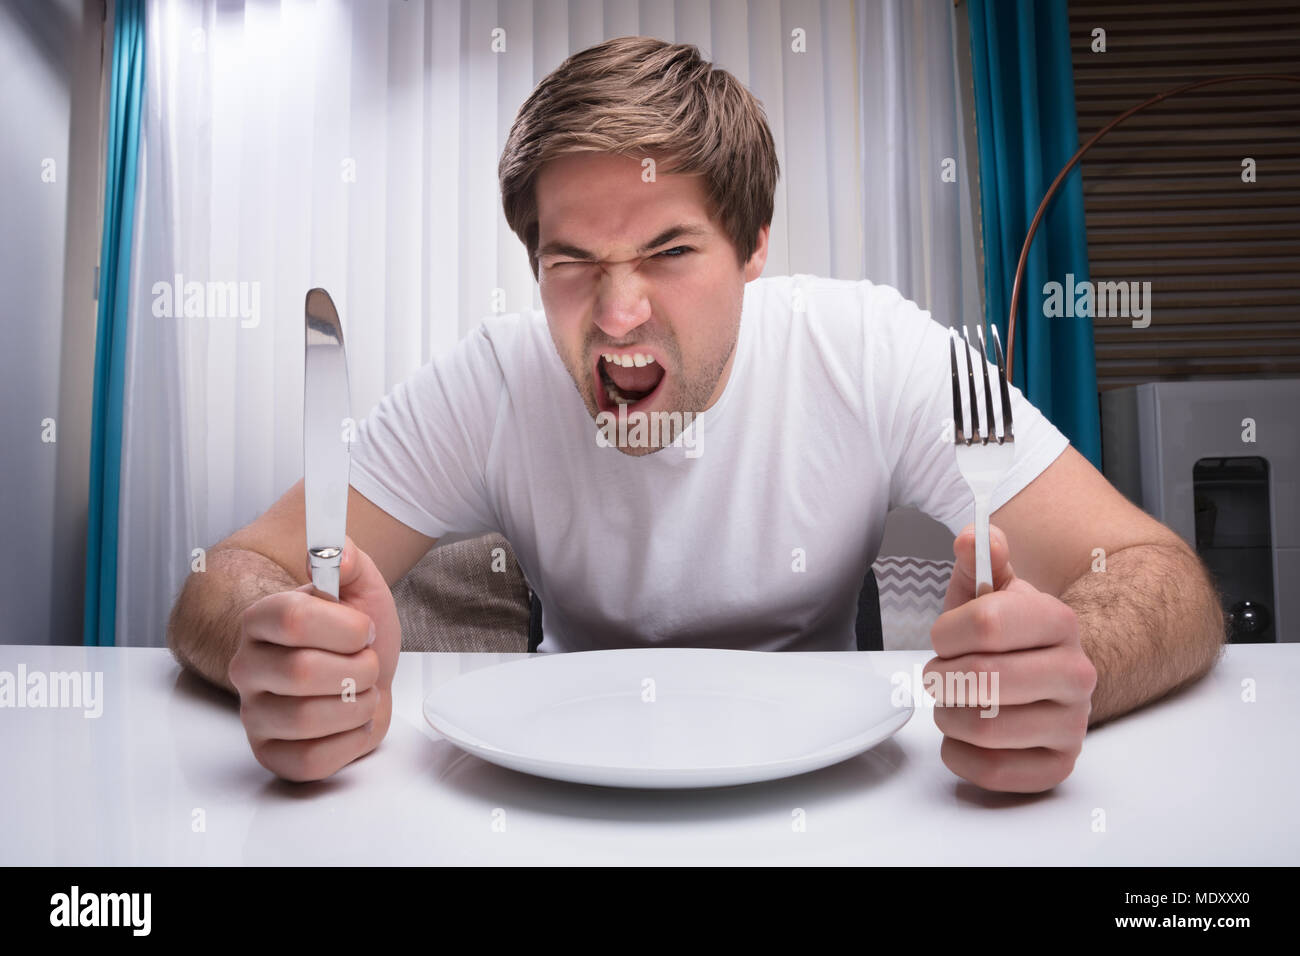 Angry Man Holding Knife And Fork With Empty Plate On Table Stock Photo -  Alamy